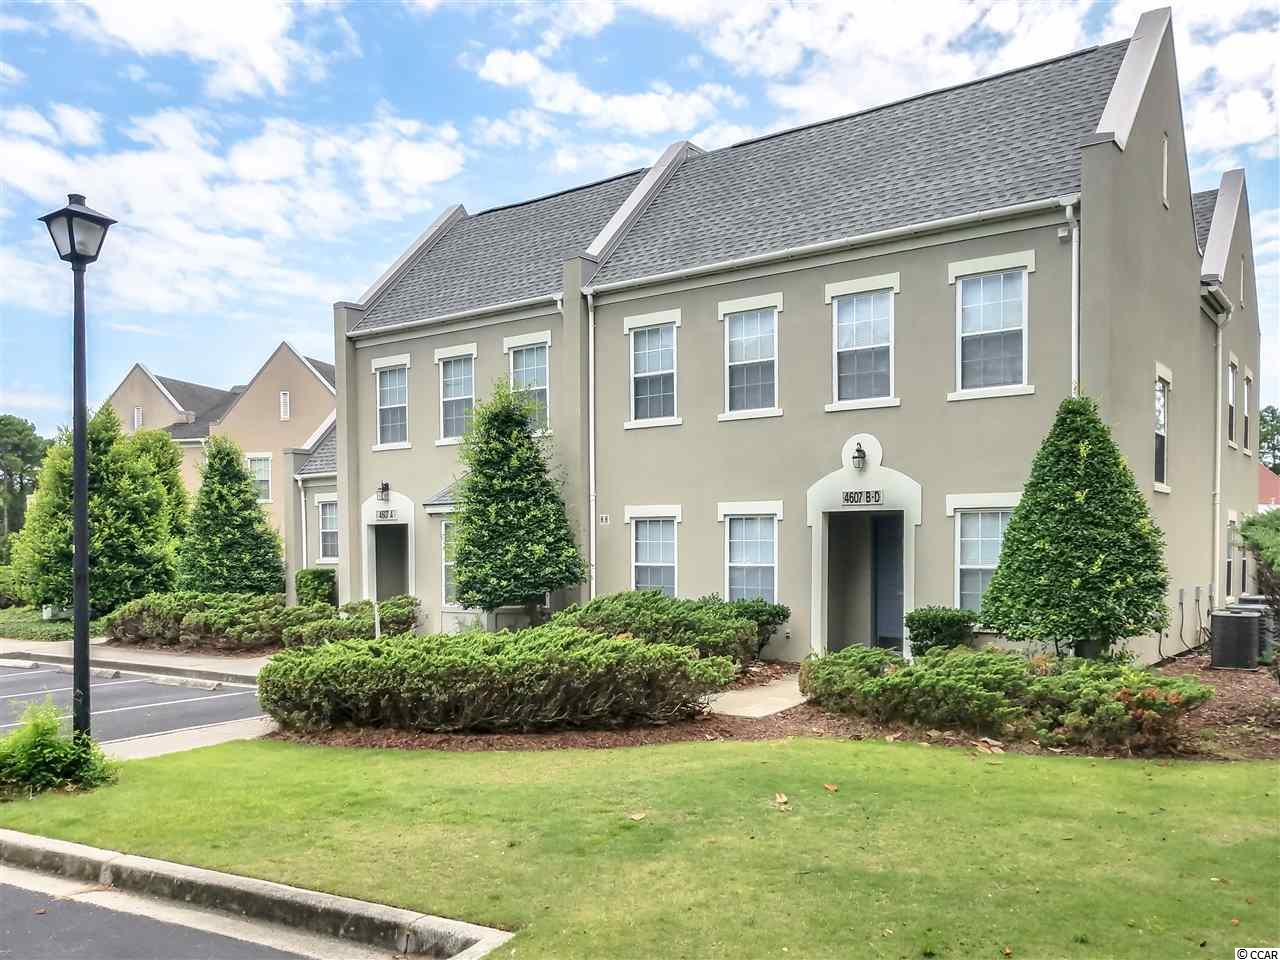 Turnberry Park condo for sale in Myrtle Beach, SC